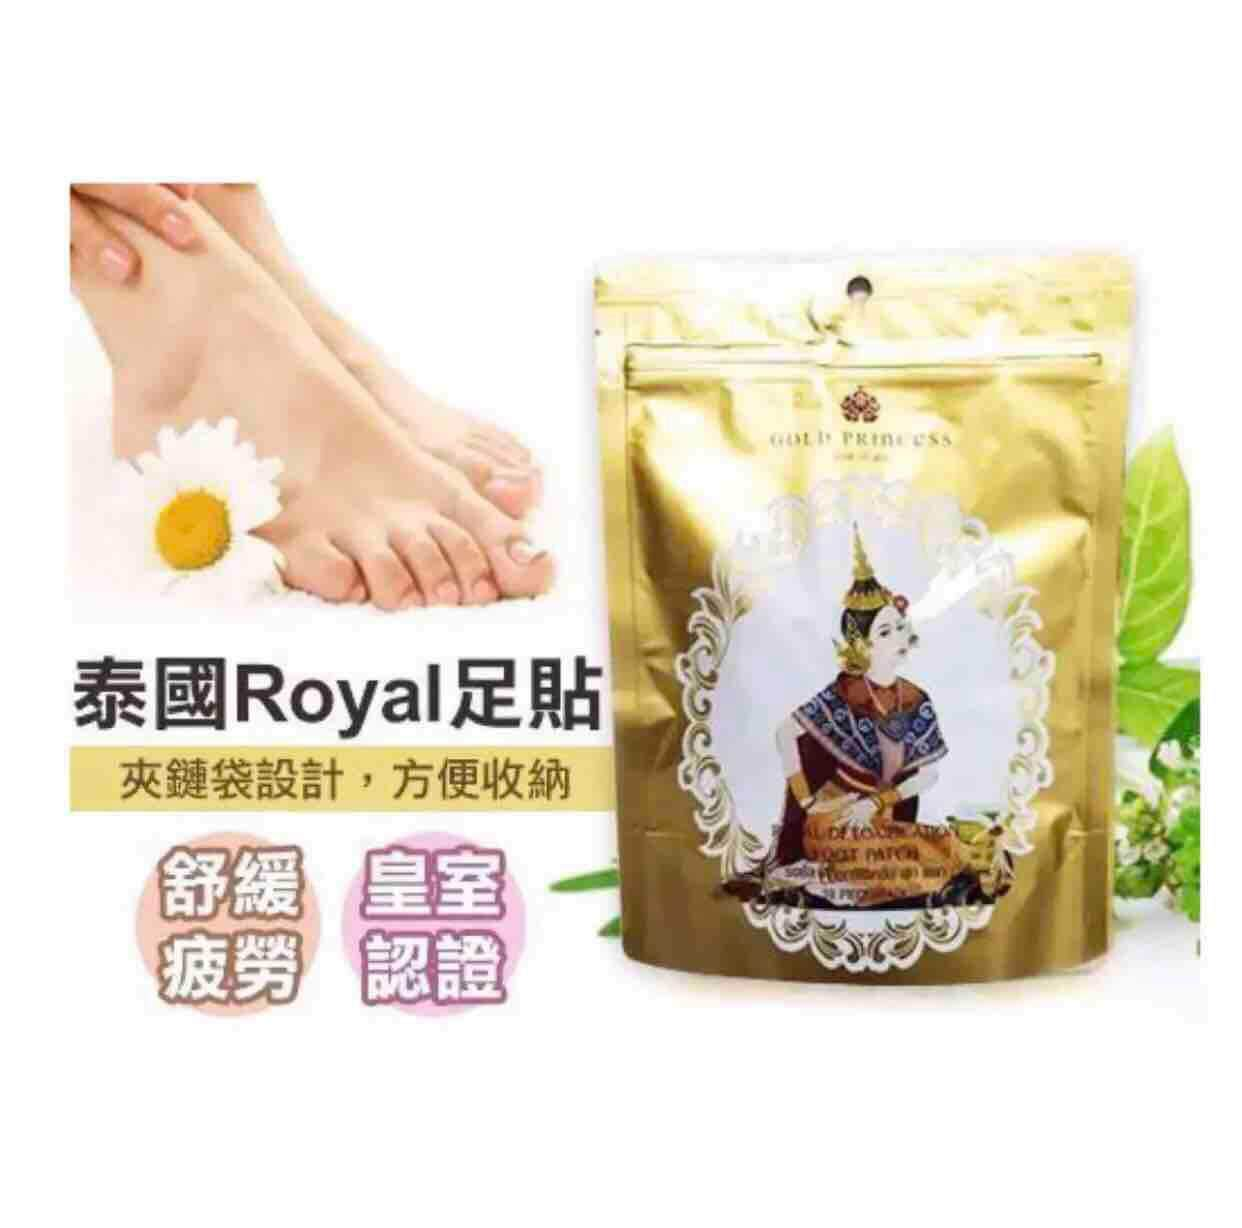 GOLD PRICESS ROYAL DETOXIFICATION FOOT PATCH + FREE GIFT